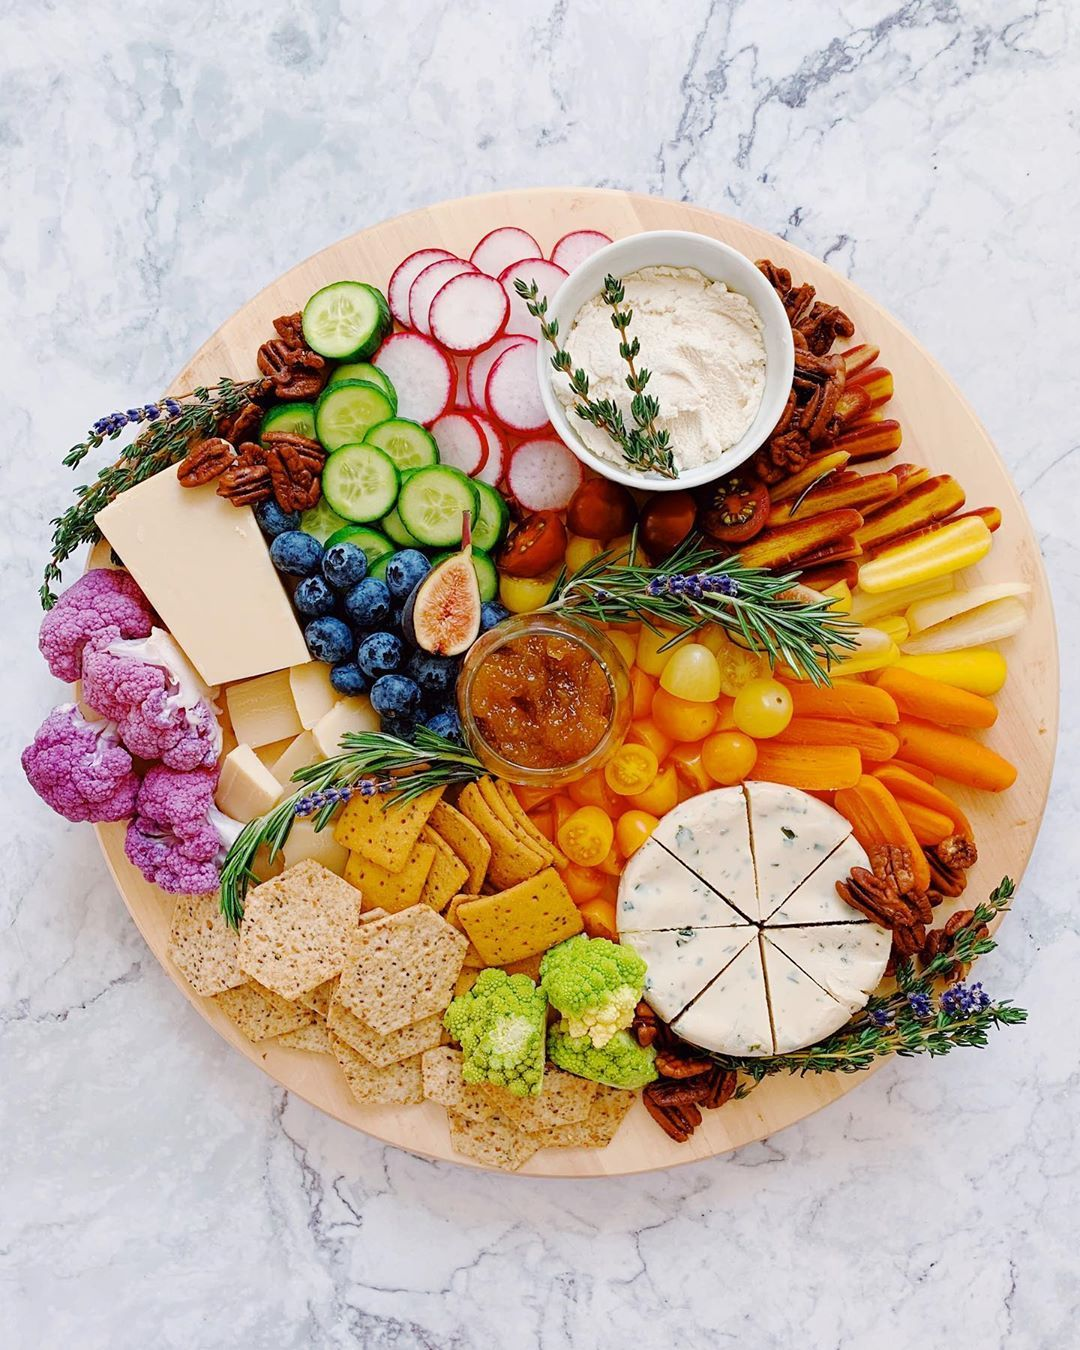 Marissa Mullen Founder And Creative Director Of That Cheese Plate Shares Her Key Tips For C In 2020 Vegan Cheese Boards Holiday Cheese Boards Vegetarian Cheese Boards